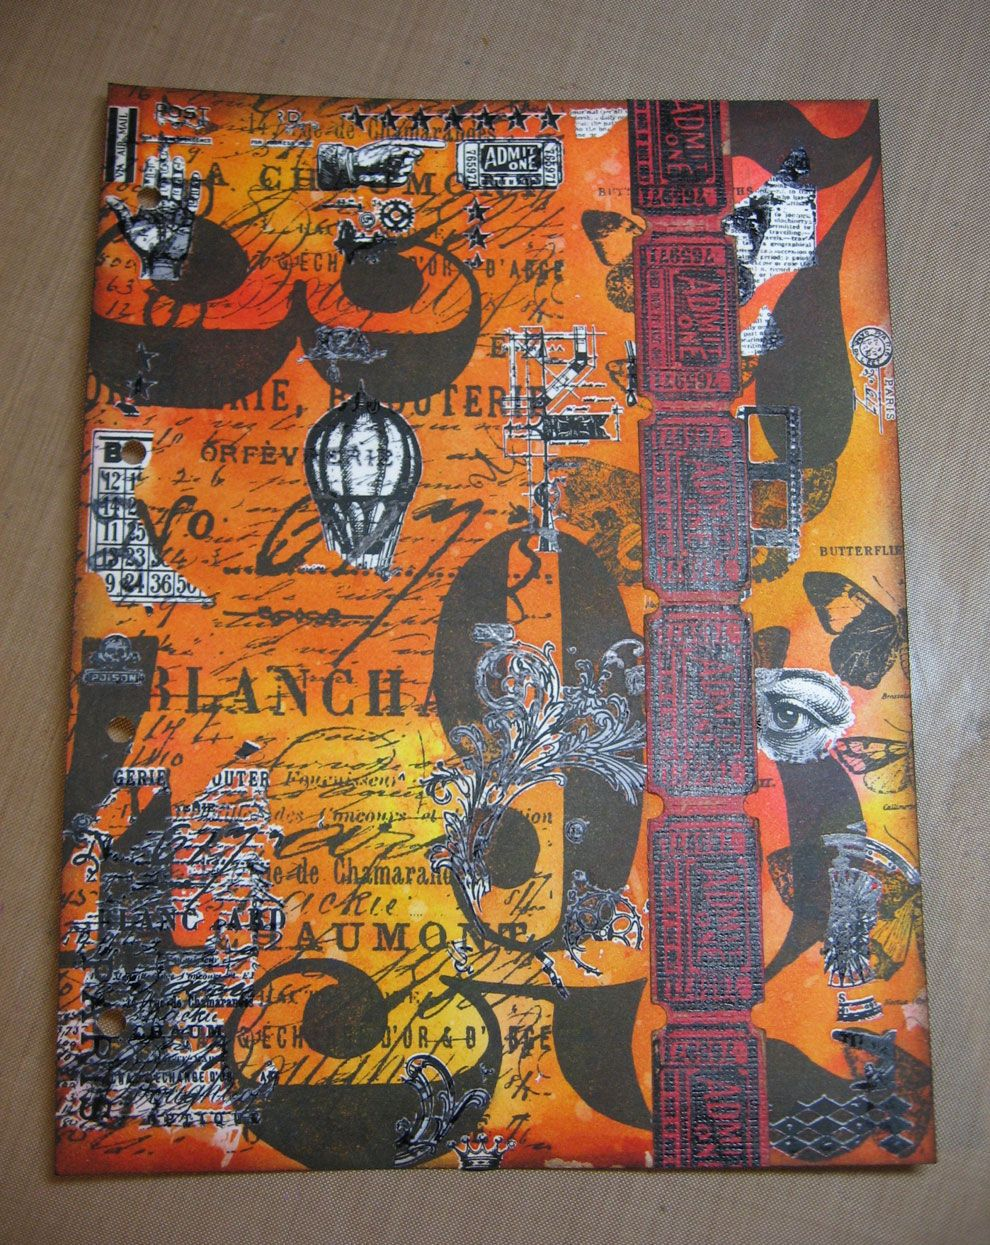 I'm finally getting around to completing my May page for Tim Holtz's 12 Tags of 2013 challenge. It's not really a challenge, just a fun thin...